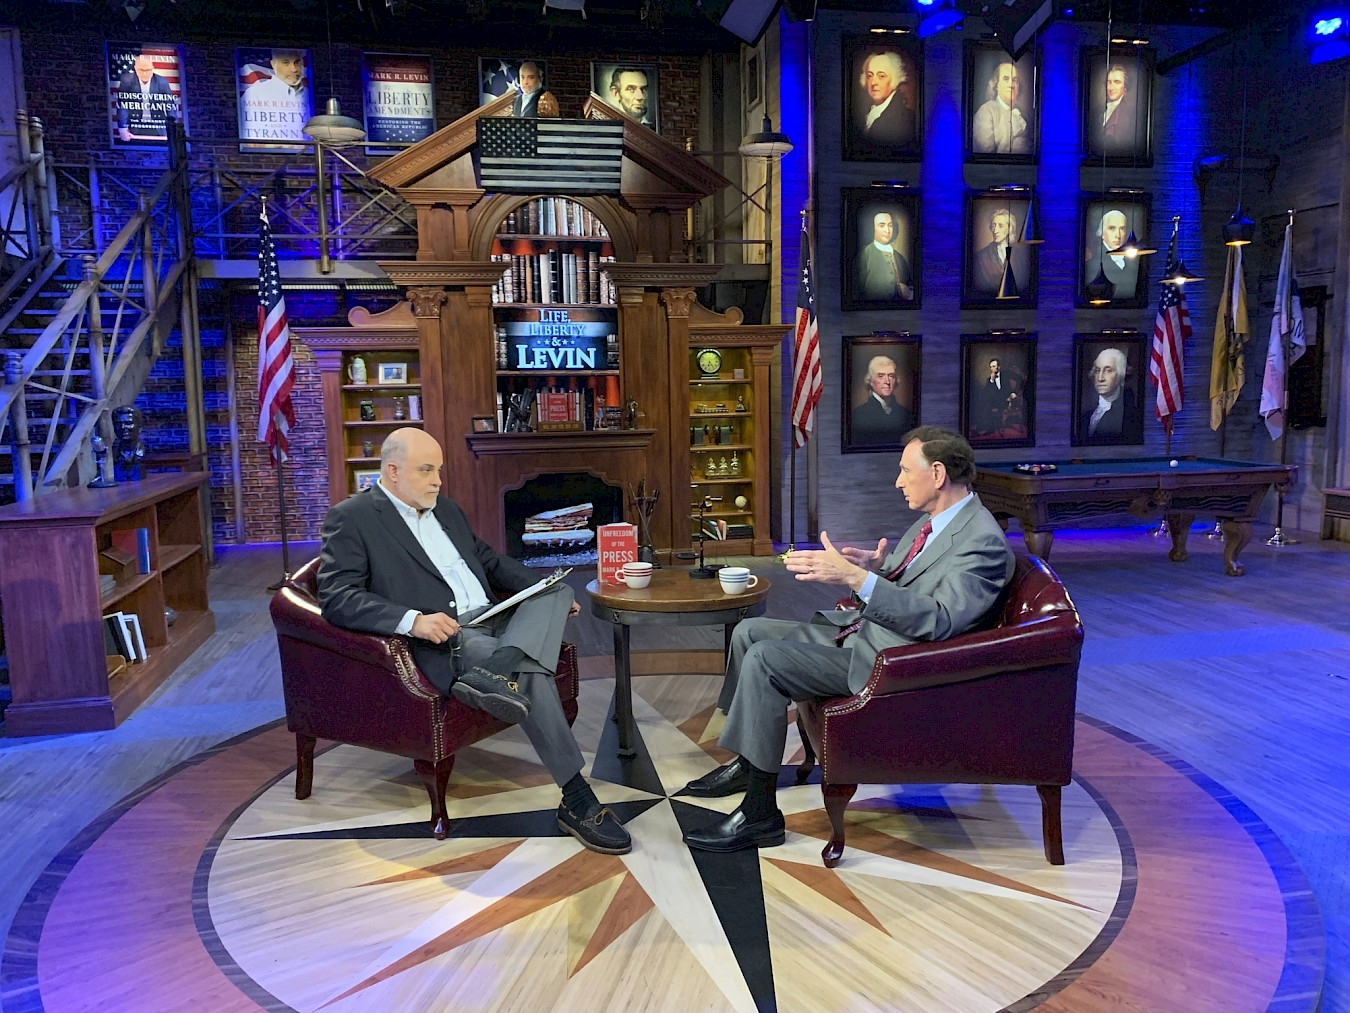 Protect The Harvest founder, Forrest Lucas, will appear on the Fox News show, 'Life, Liberty, & Levin' with Mark Levin.